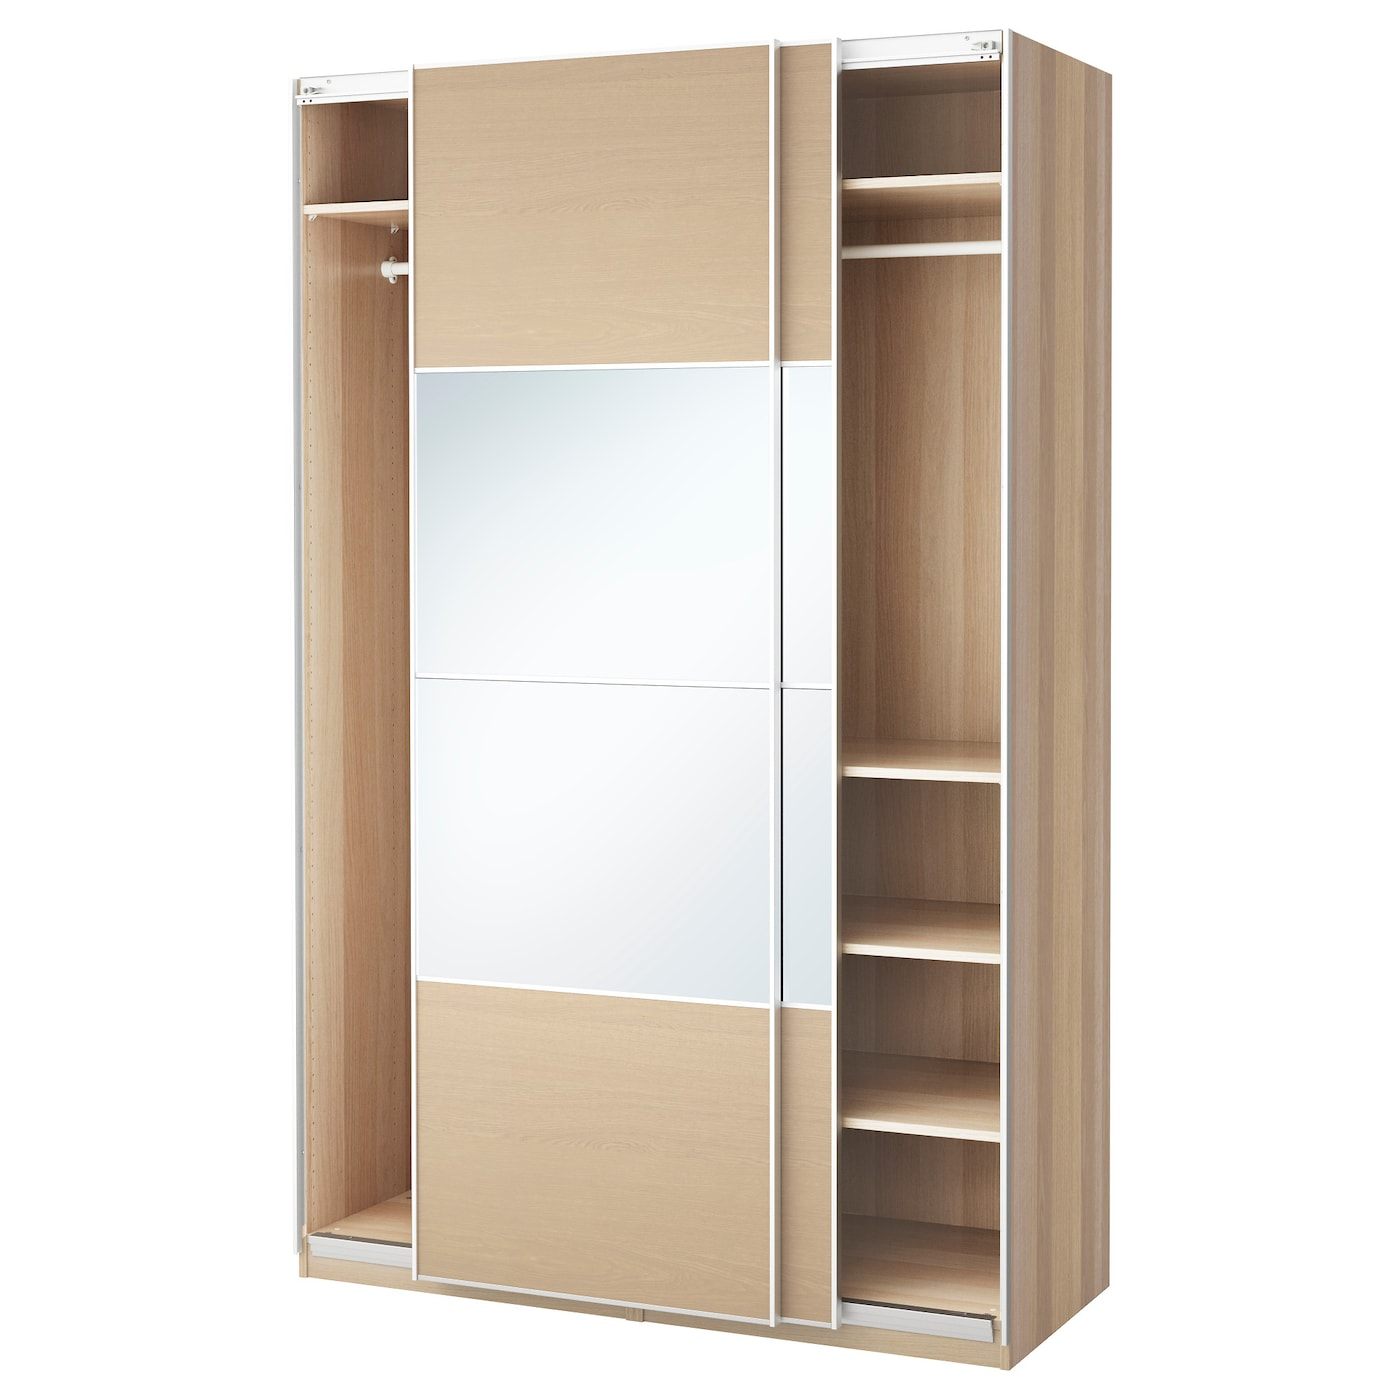 Pax wardrobe white stained oak effect auli ilseng - Porte coulissante dressing ikea ...